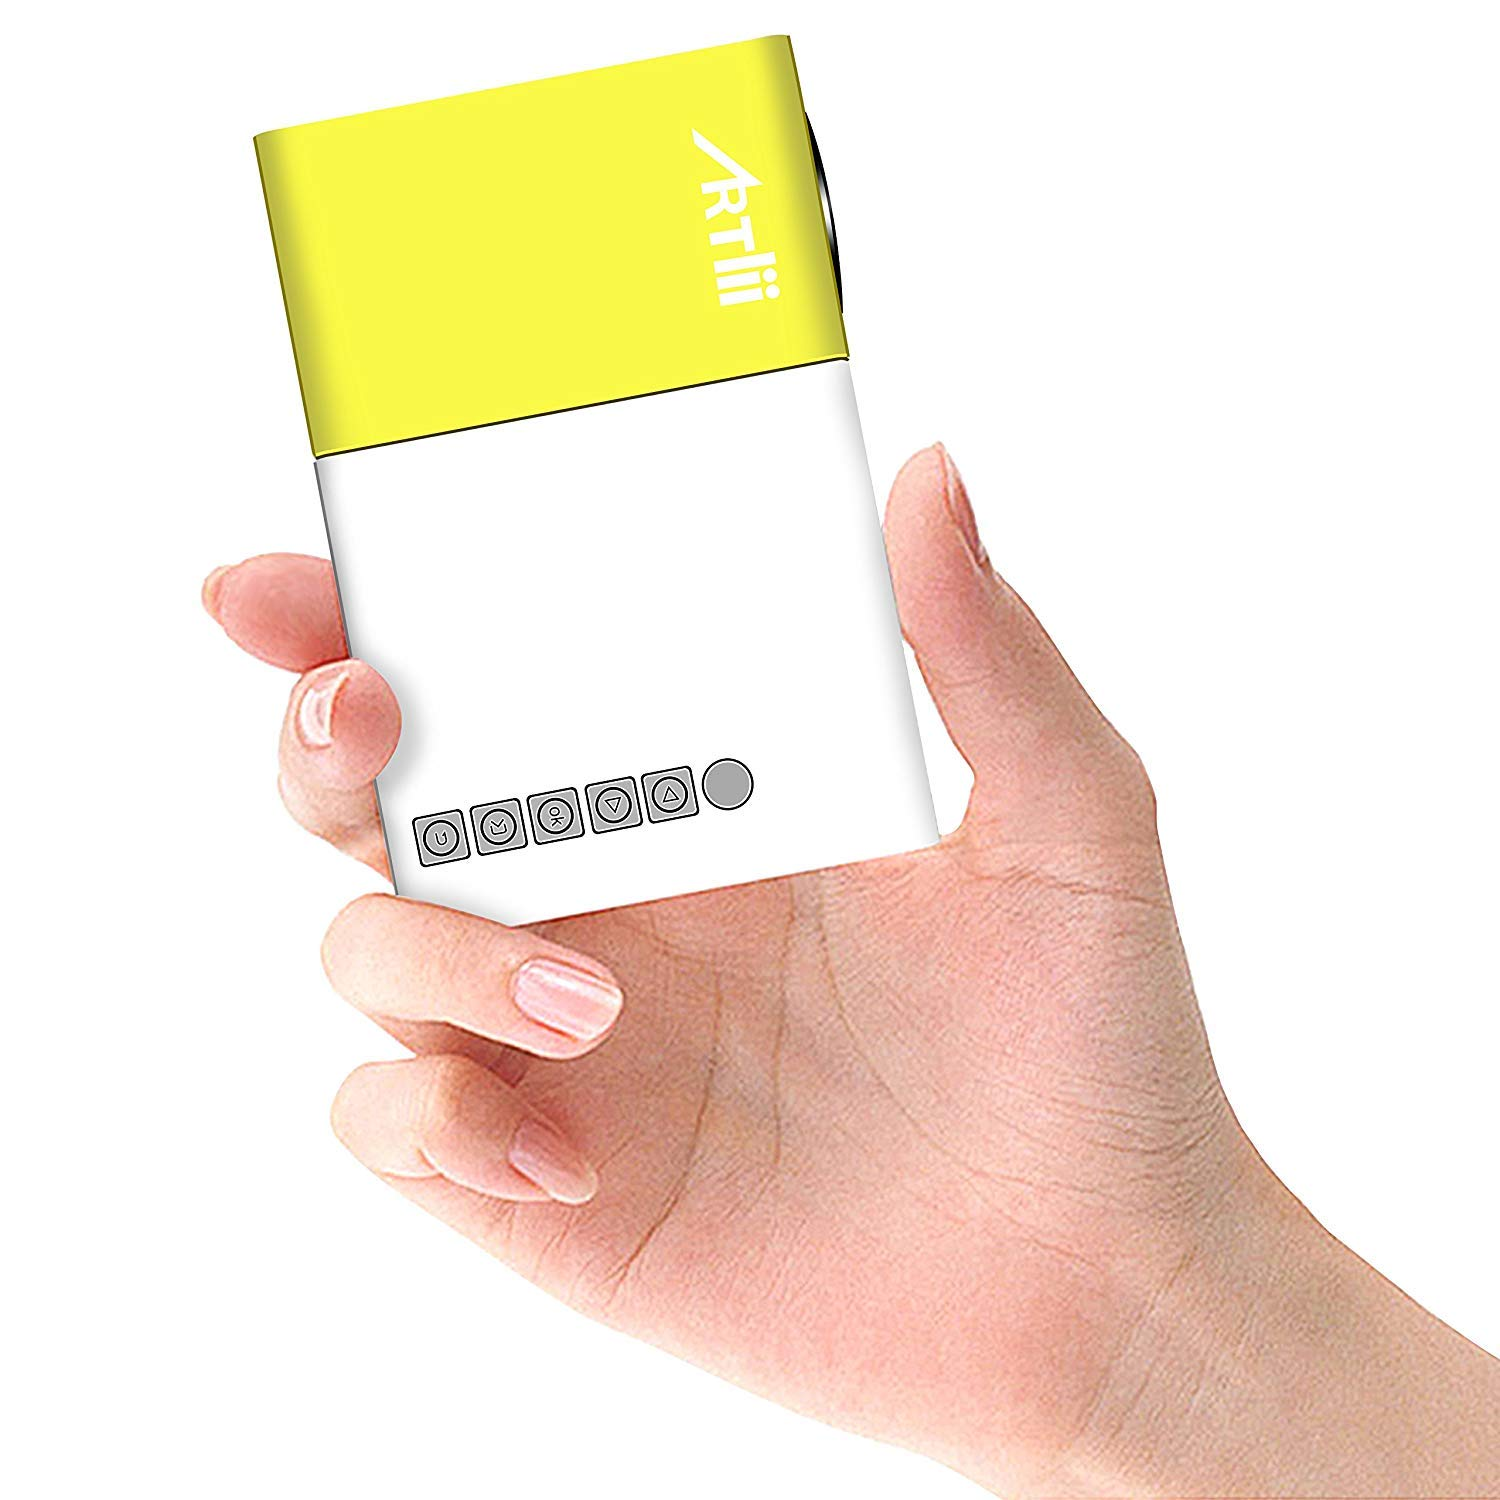 ABOUTTHEFIT Projector,Movie iPhone Mini Pocket Laptop Smartphone Projector  for Home Cinema Video Party - Yellow&White